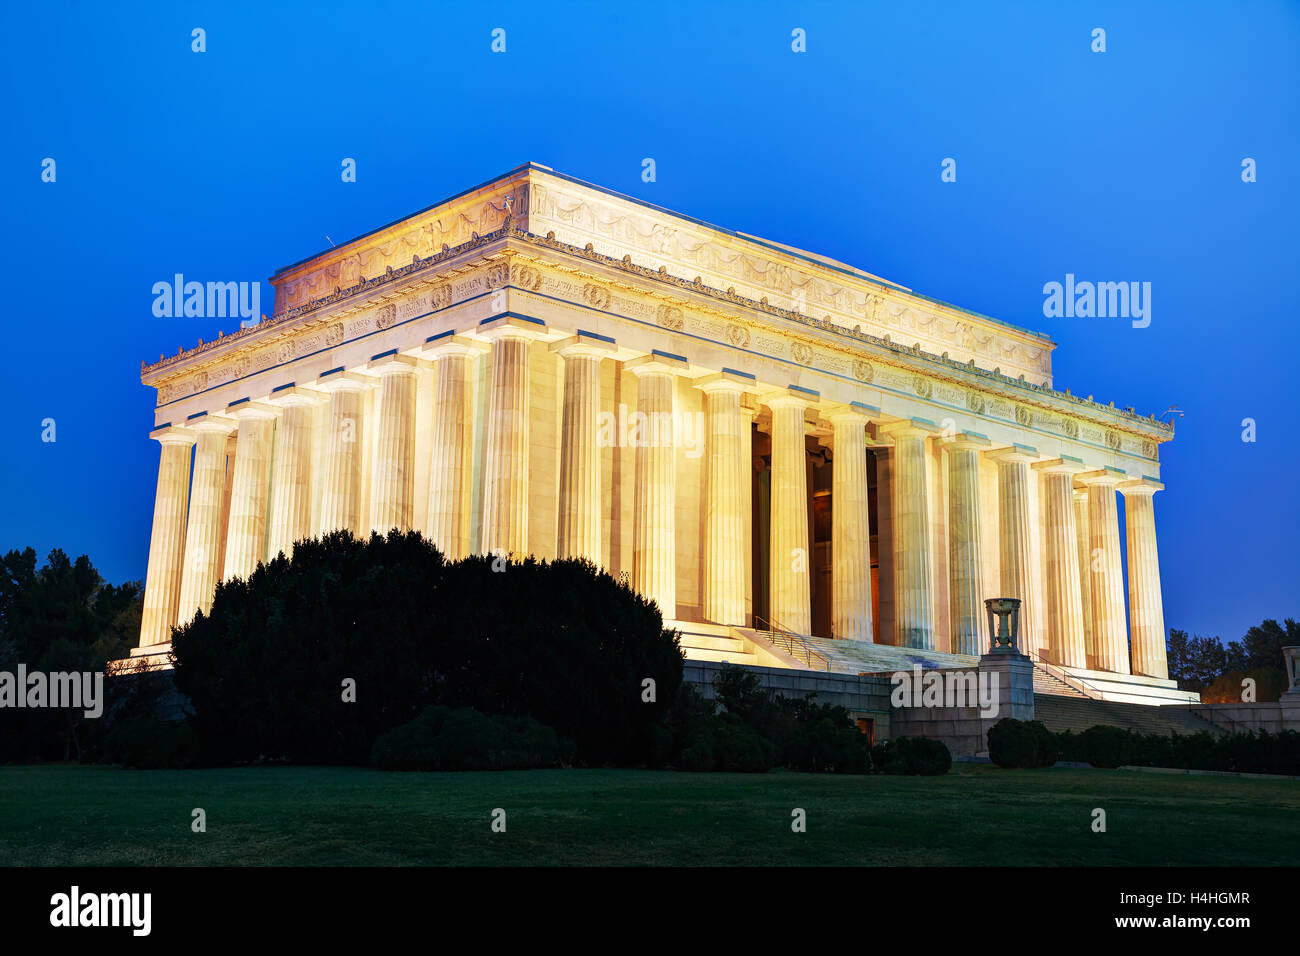 Abramo Lincoln Memorial in Washington, DC di sera Immagini Stock